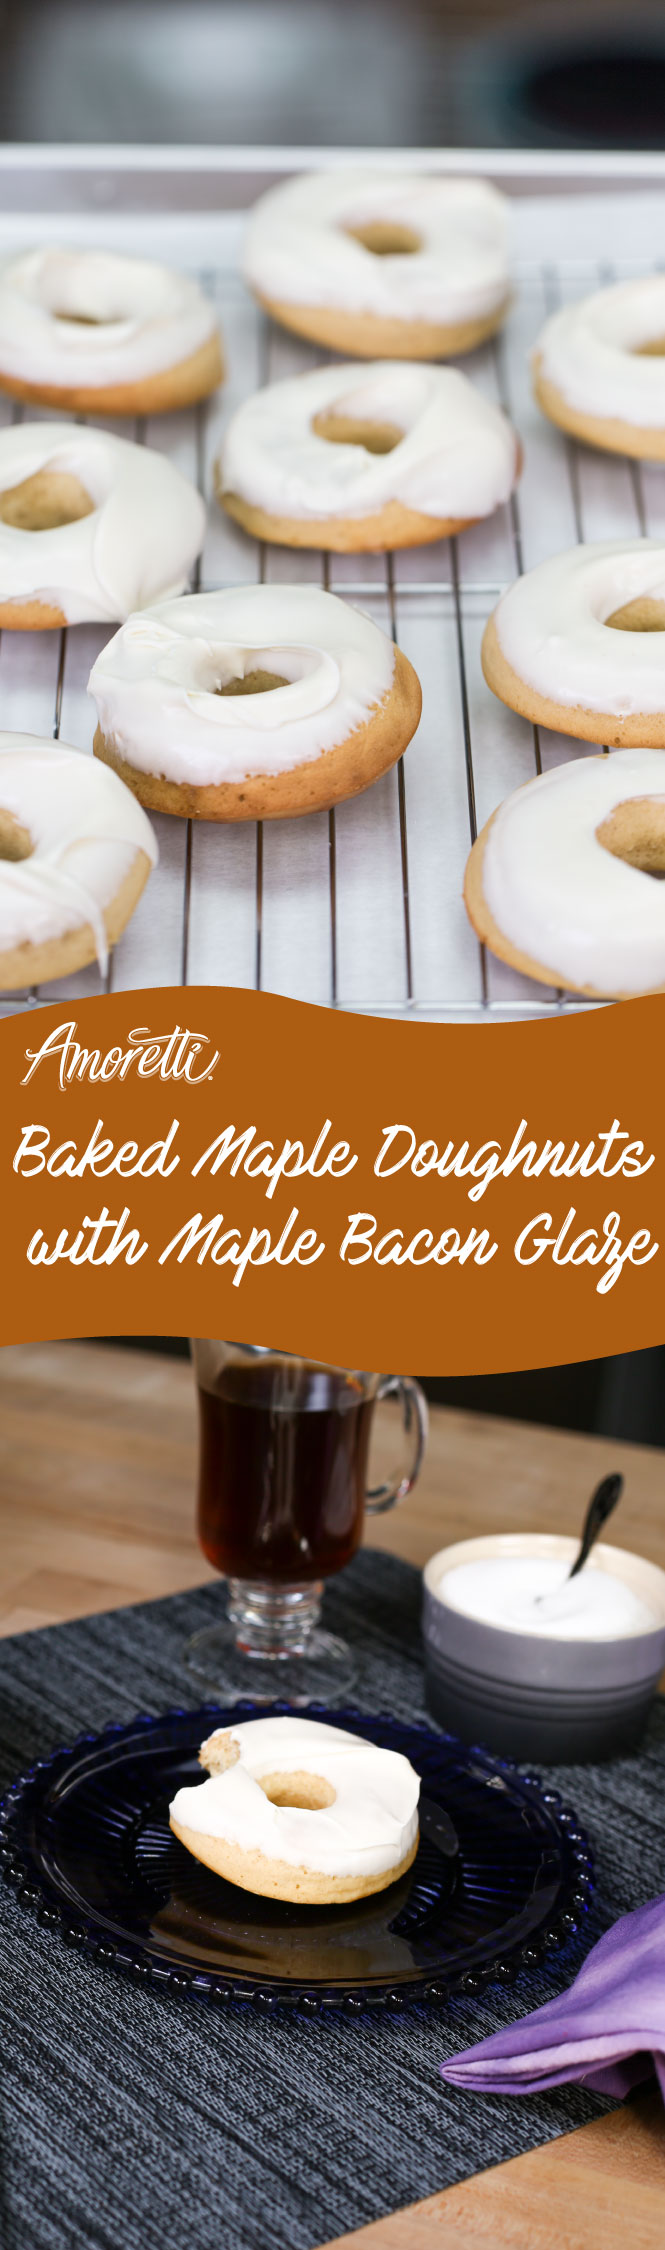 This amazing donut recipe has a sweet and tender fluffy texture with amazing maple bacon flavor!